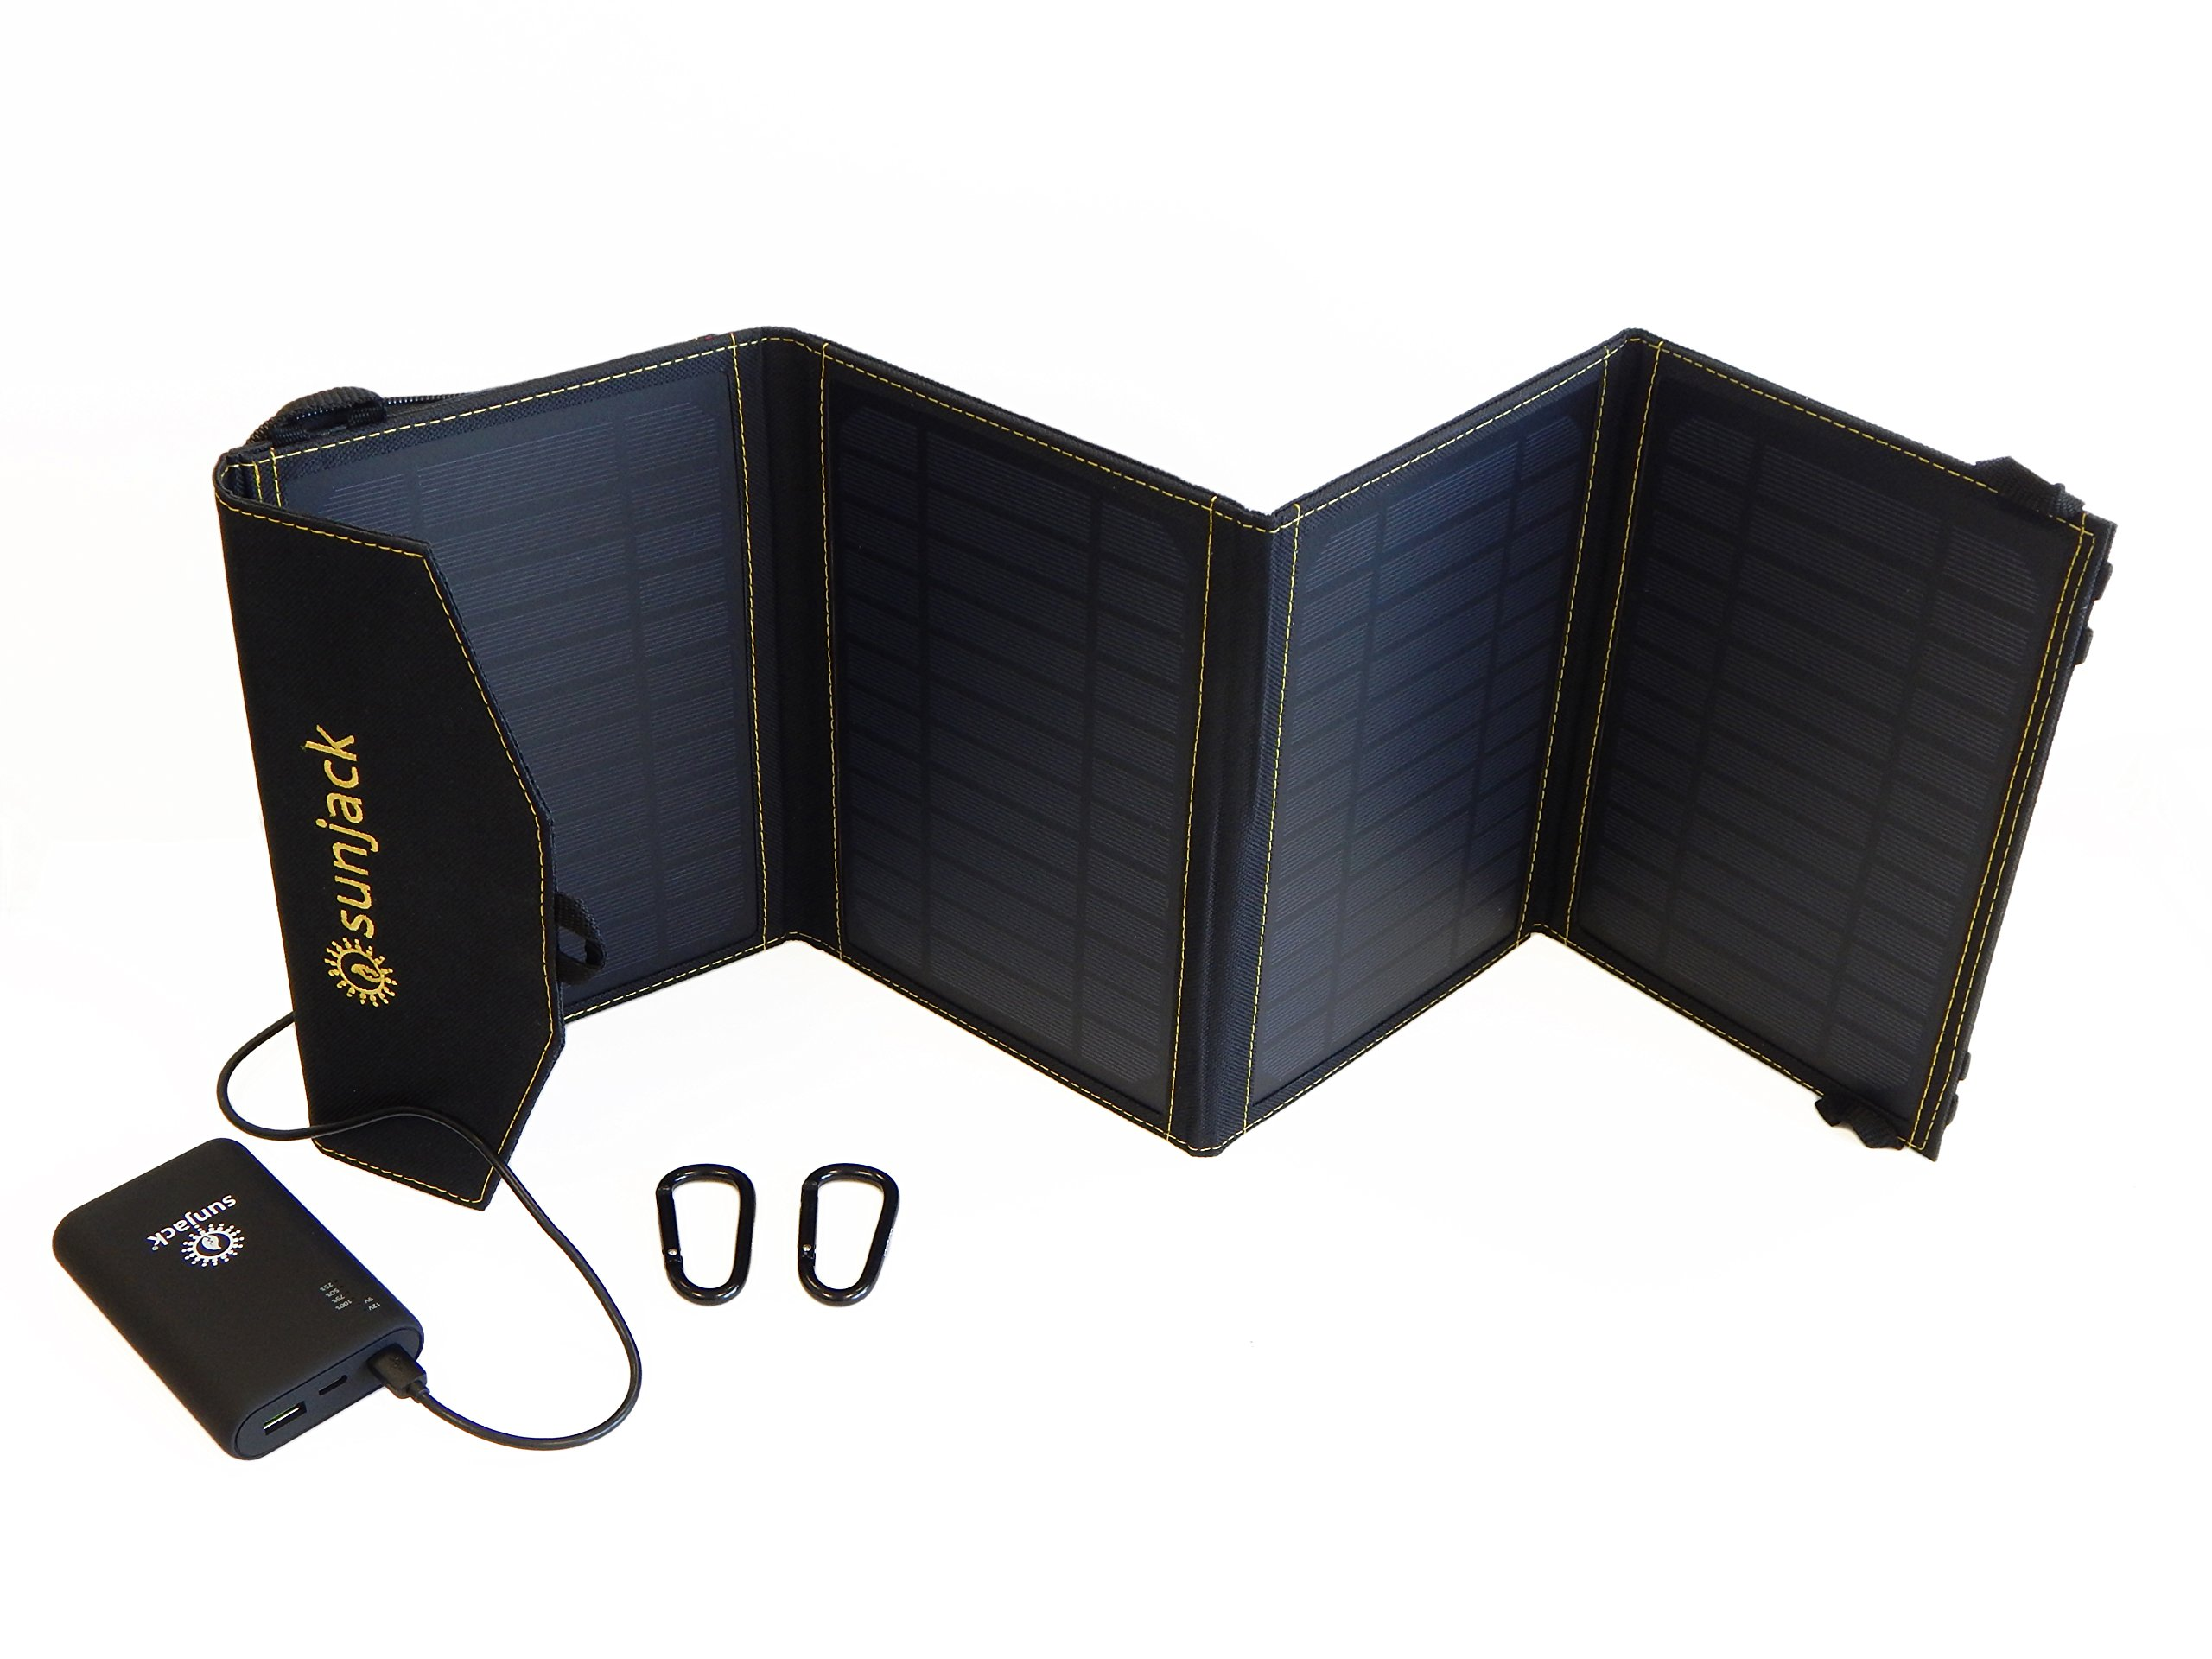 SunJack 14W Solar Charger + 10000mAh QC 3.0 Power Banks - Portable Solar Panel with USB for Cell Phones, iPad Battery, Backpacking, Camping, Hiking